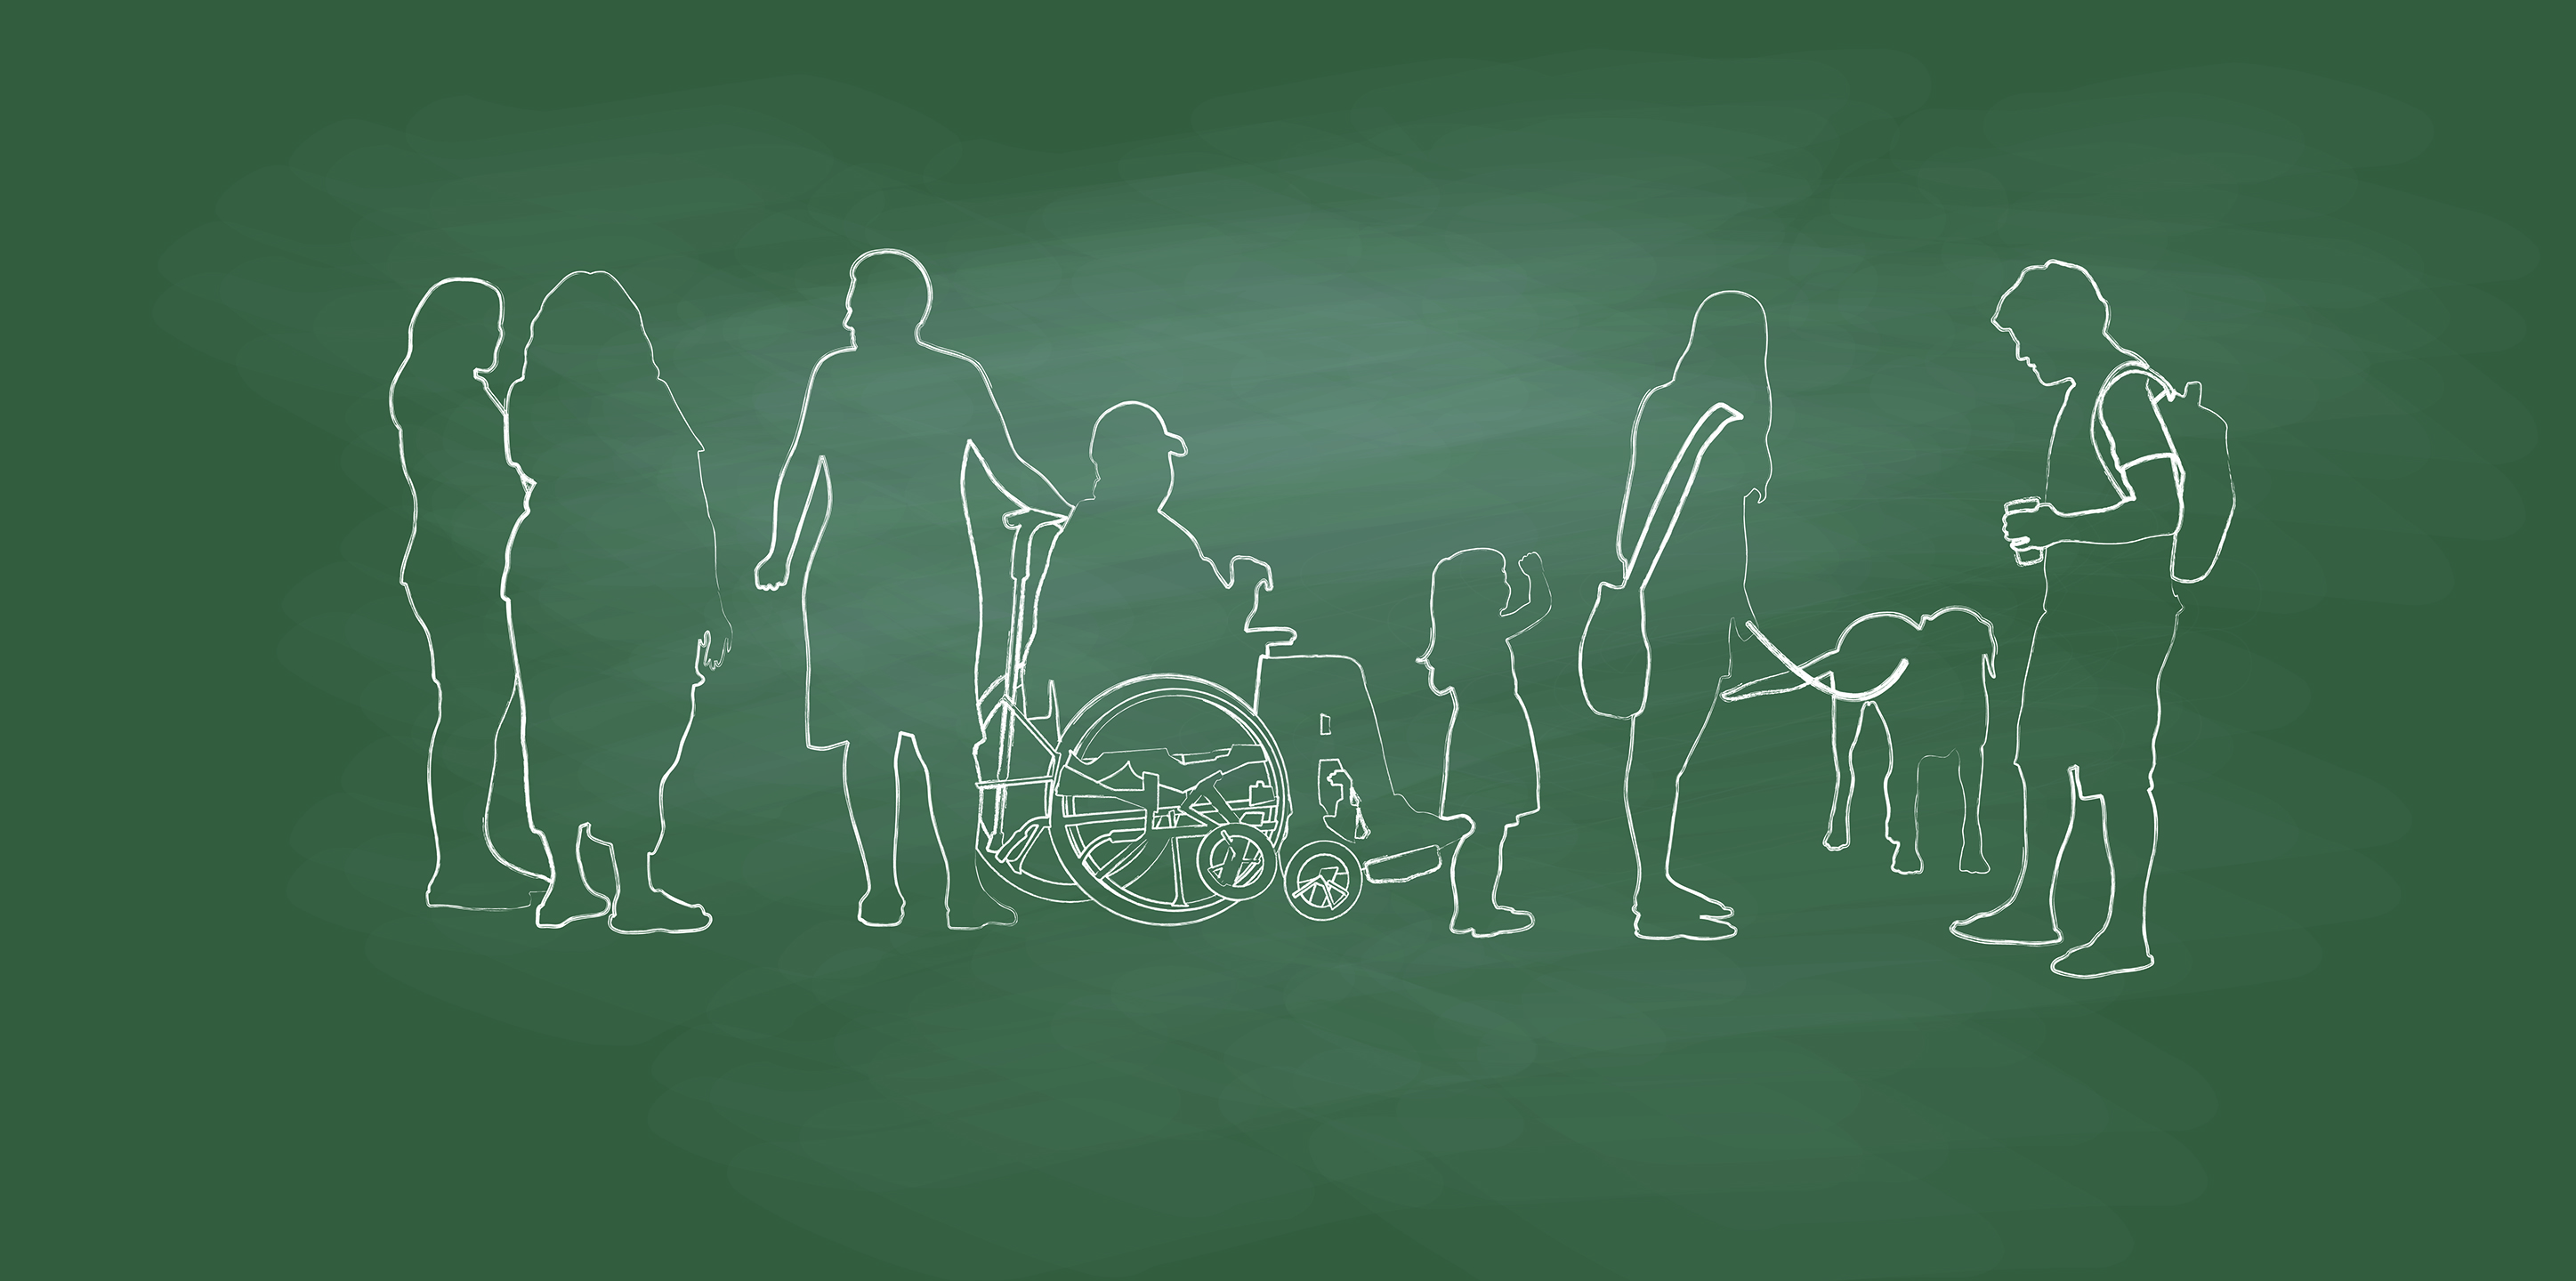 A chalk board with silhouettes of differently abled students.